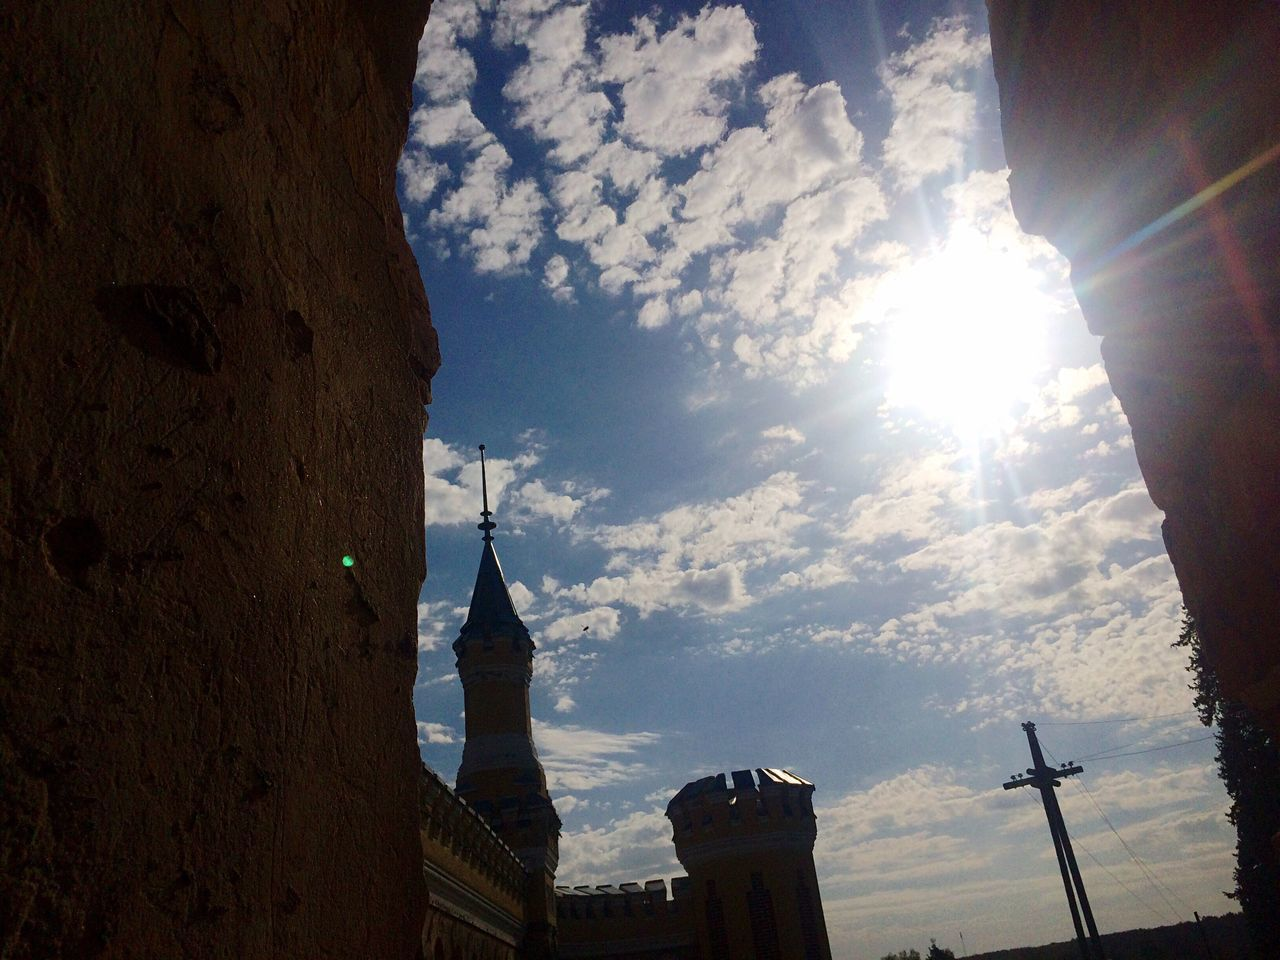 Sky Architecture Sunlight Built Structure Low Angle View Building Exterior Sunbeam Lens Flare Cloud - Sky No People Sun Travel Destinations Outdoors Spirituality Place Of Worship Day Nature